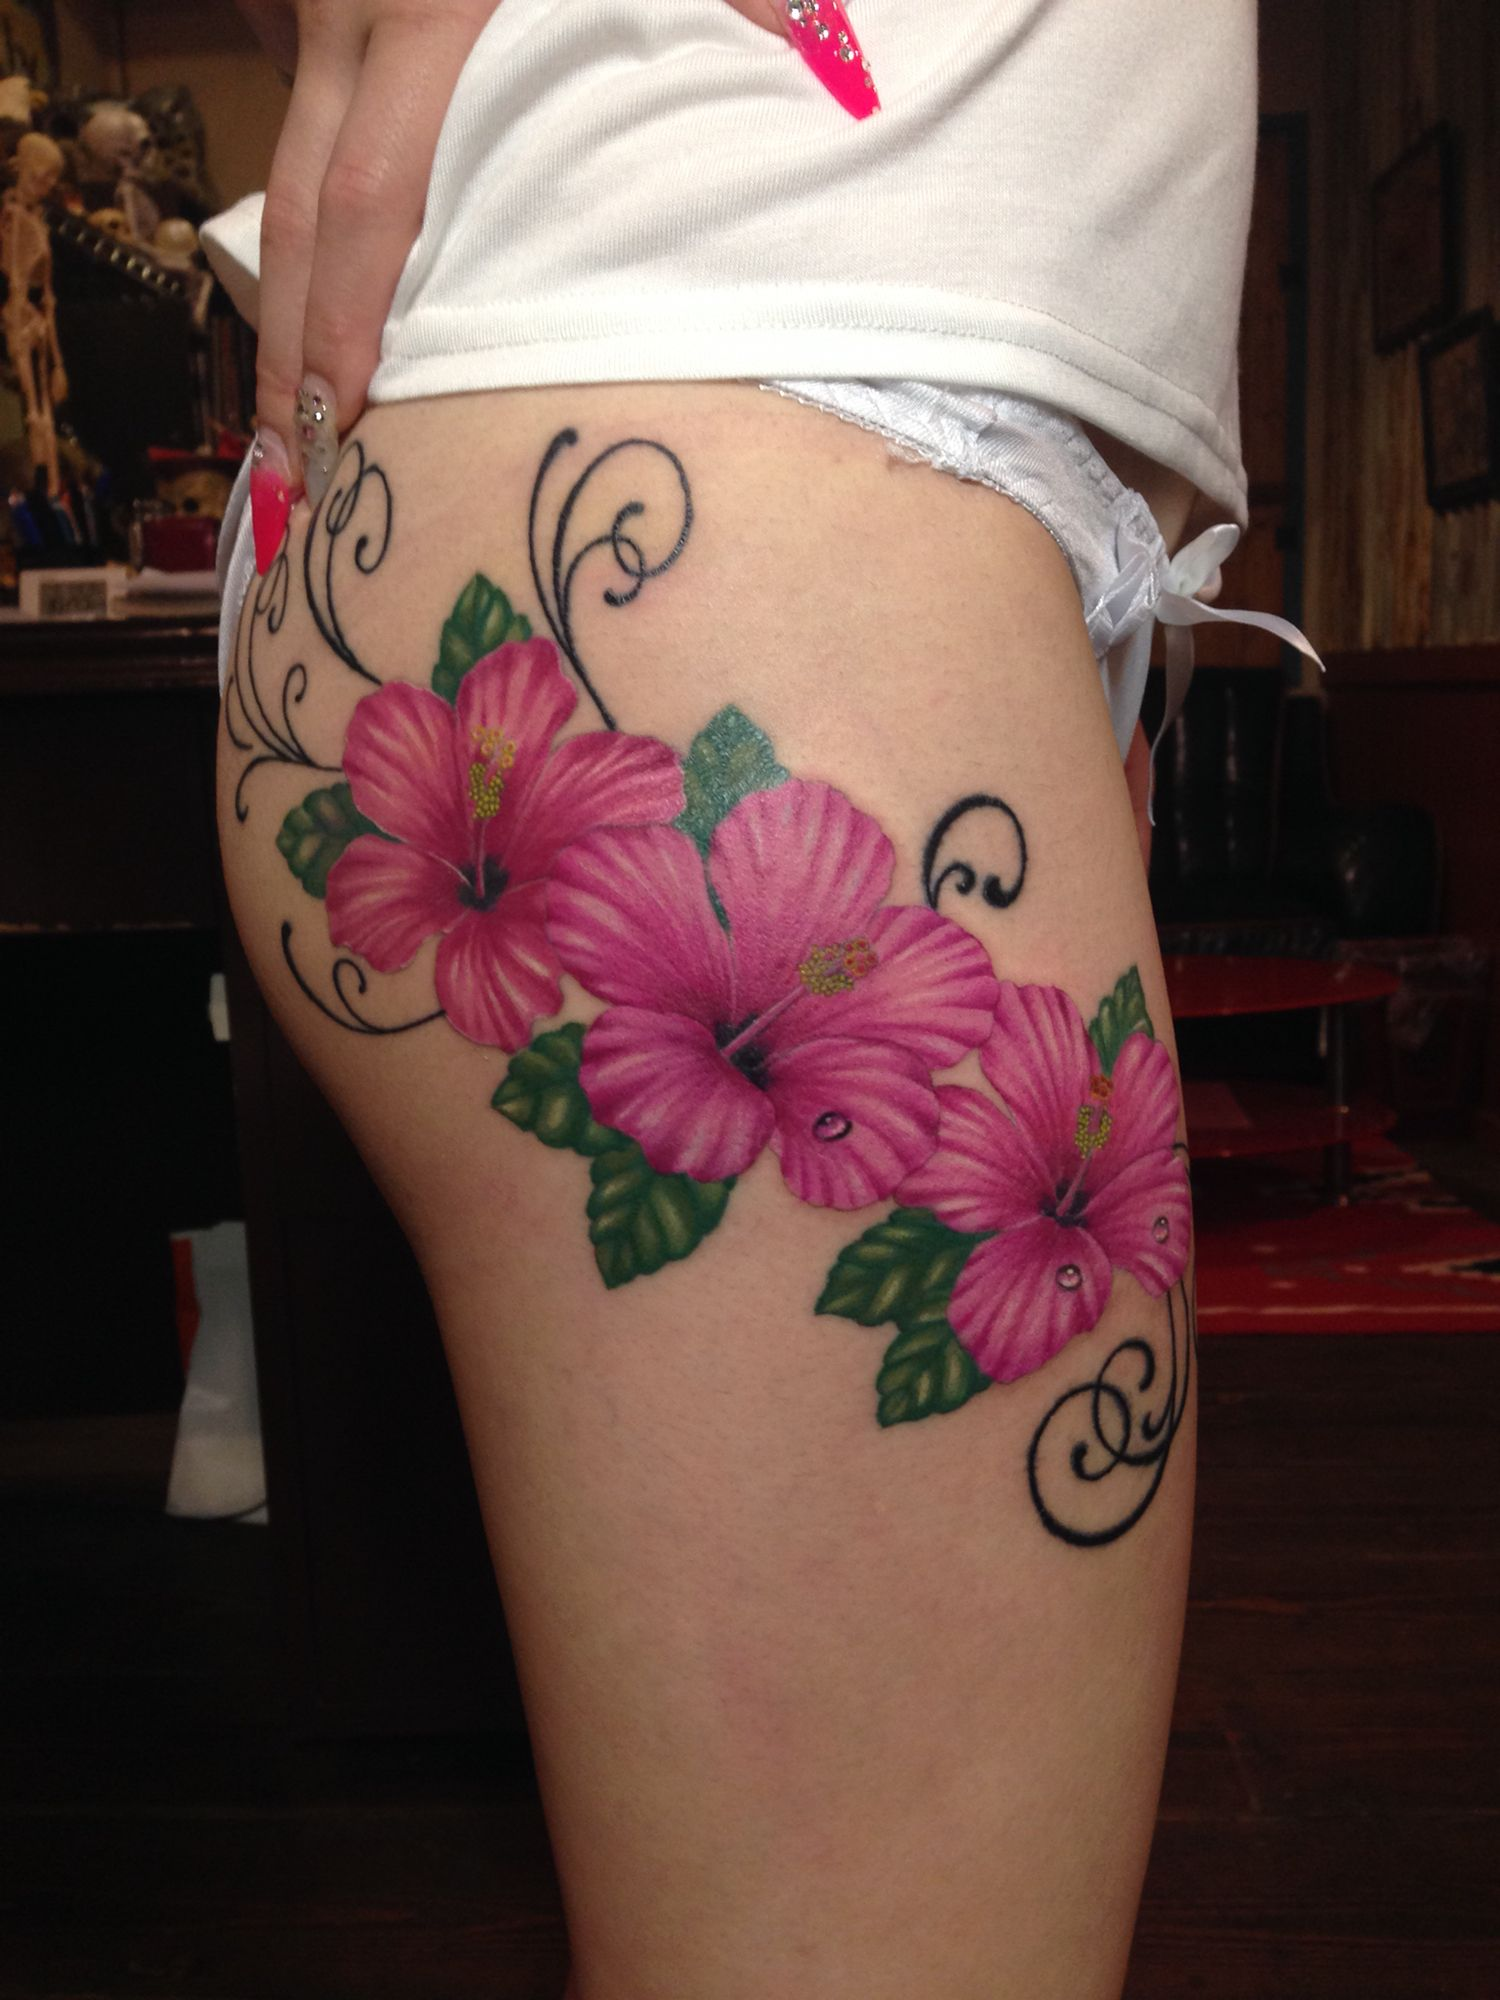 Hibiscus tattooflower tattoo follow me facebookmad hibiscus tattooflower tattoo follow me facebookmad izmirmasajfo